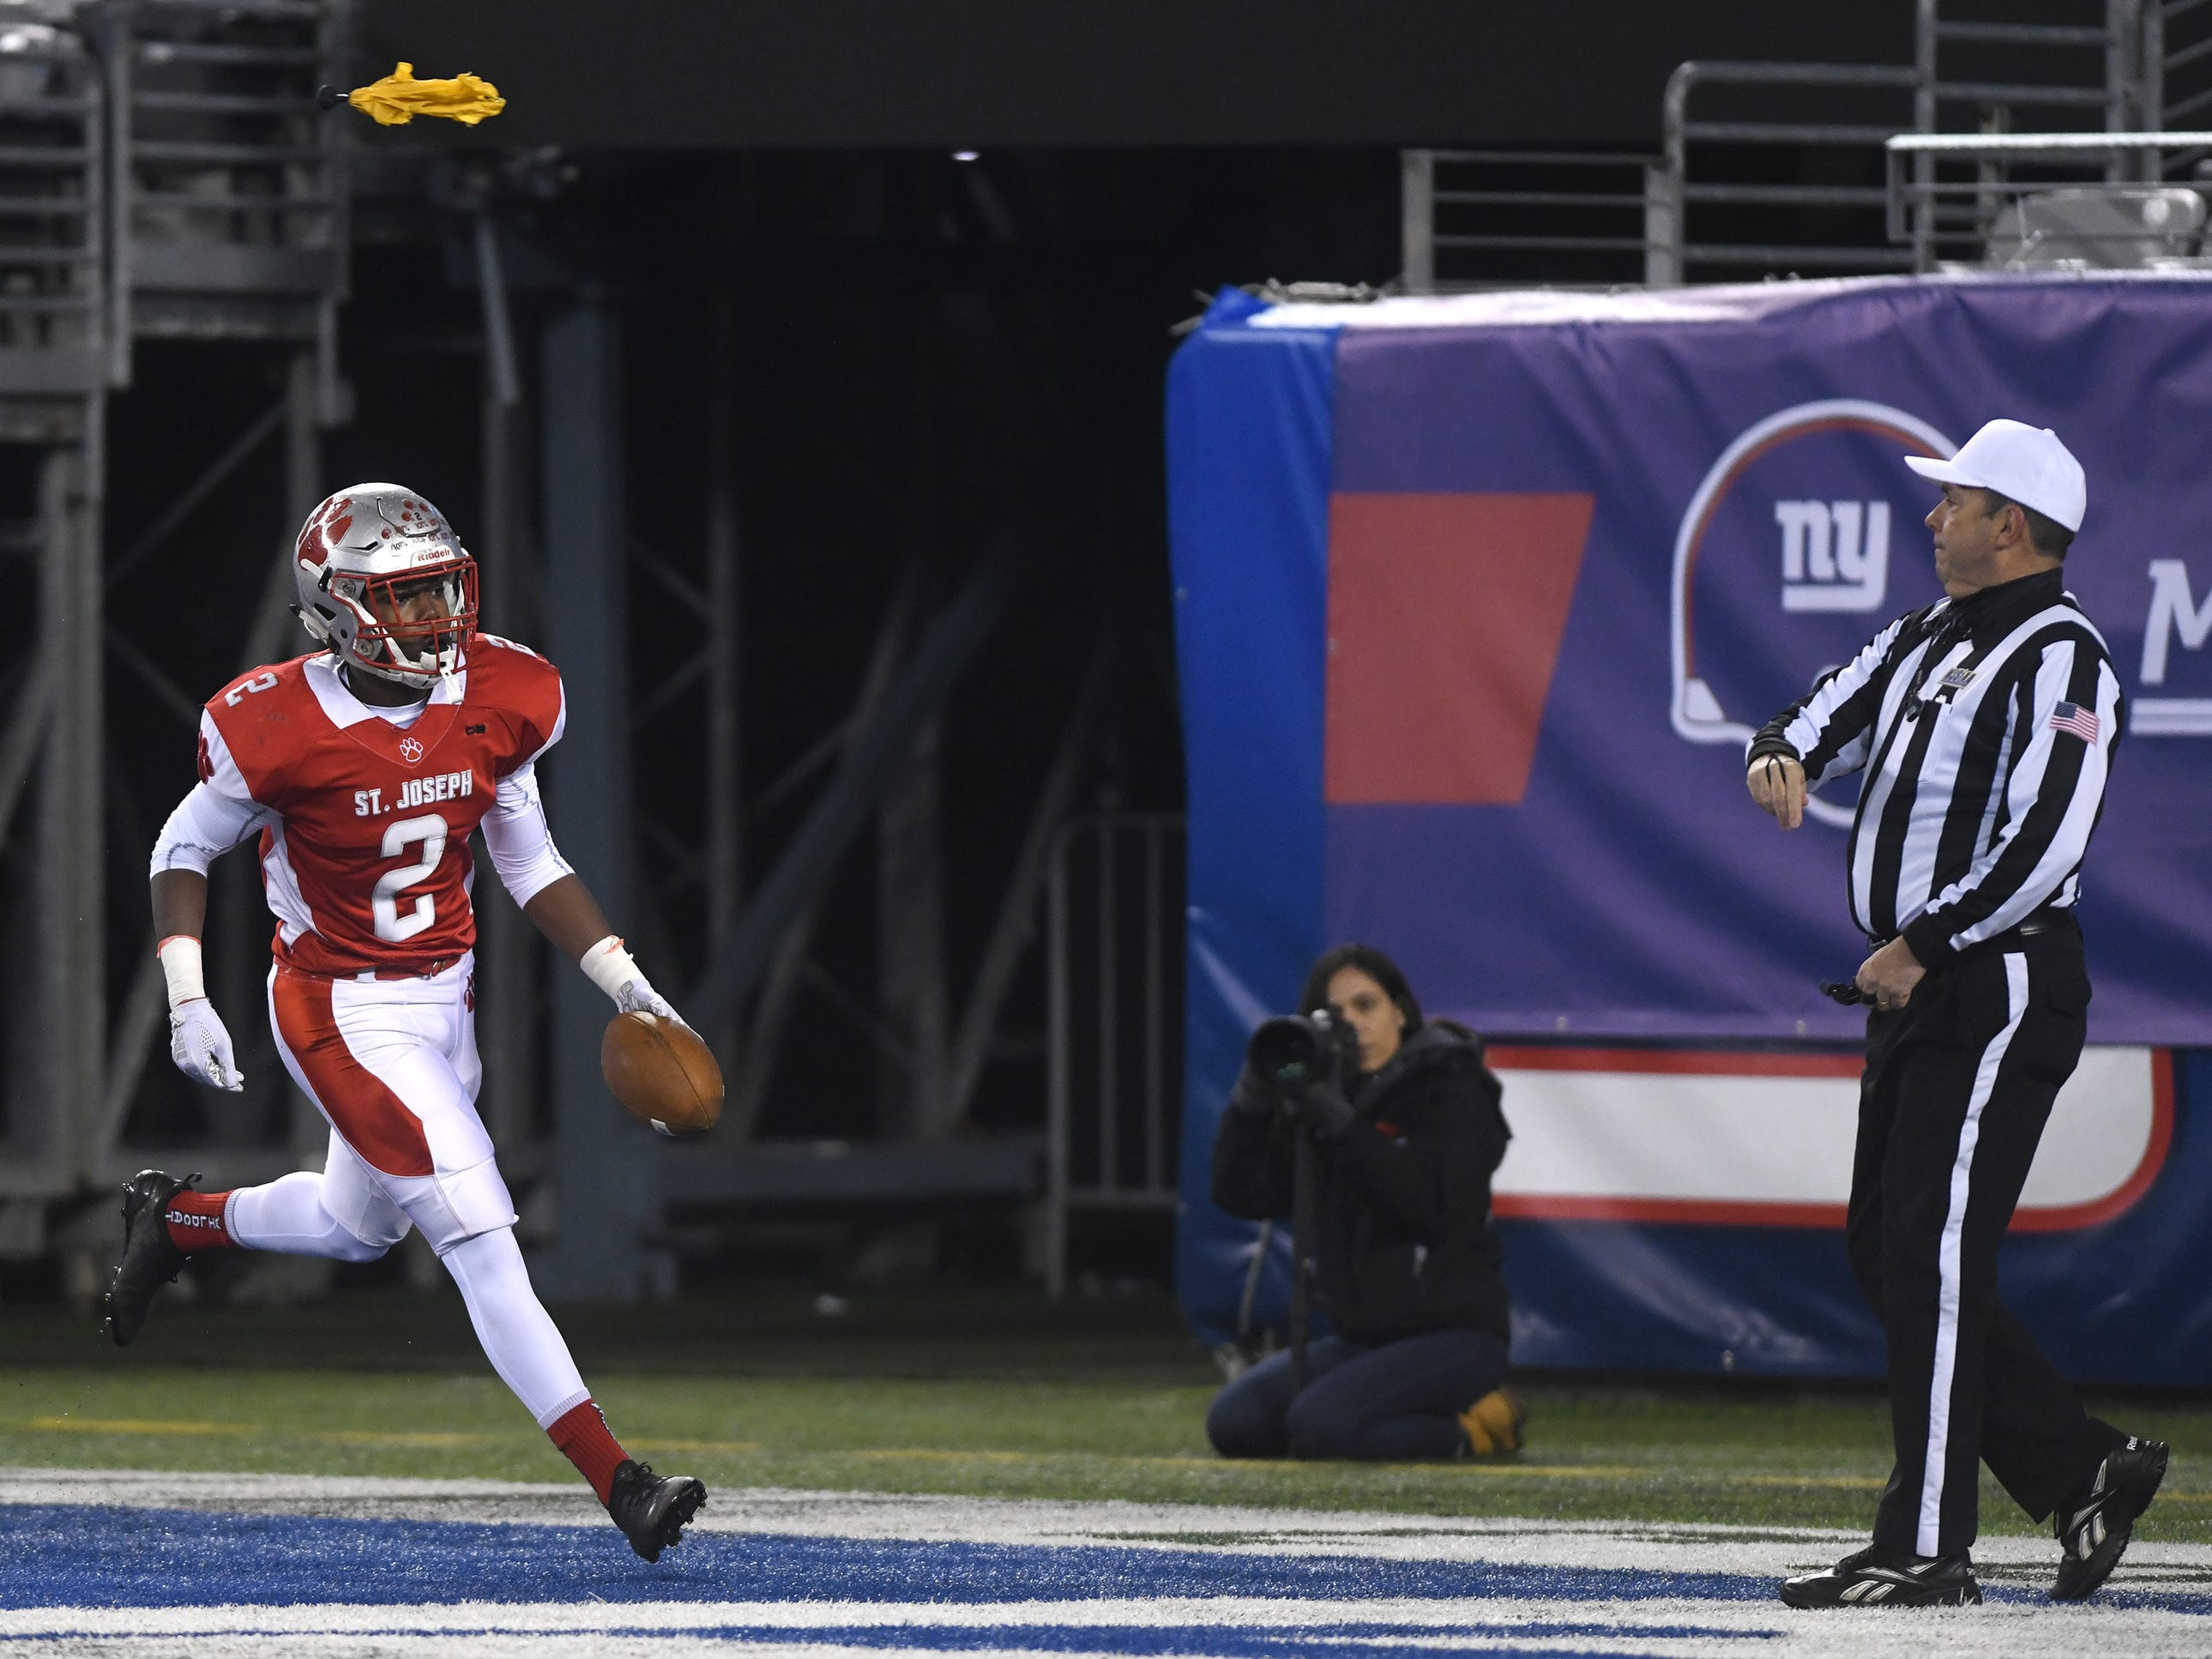 St. Joseph's Ahmad Ross runs for a touchdown against Holy Spirit. The Wildcats topped the Spartans, 41-22 at MetLife Stadium on Friday, November 30, 2018.